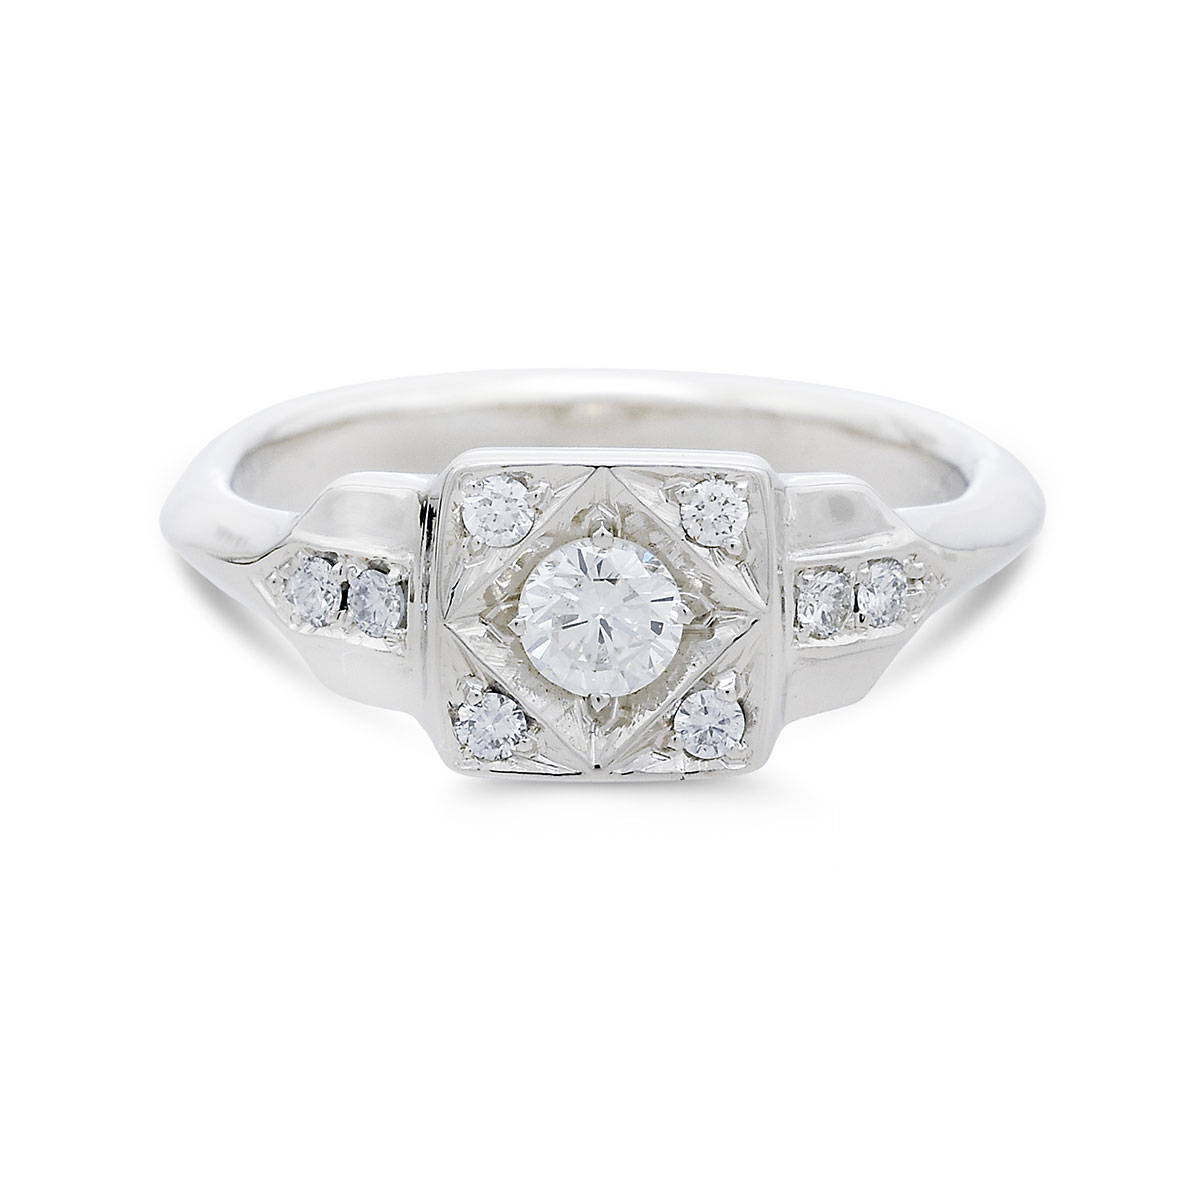 WR0326 Art Deco Diamond Ring